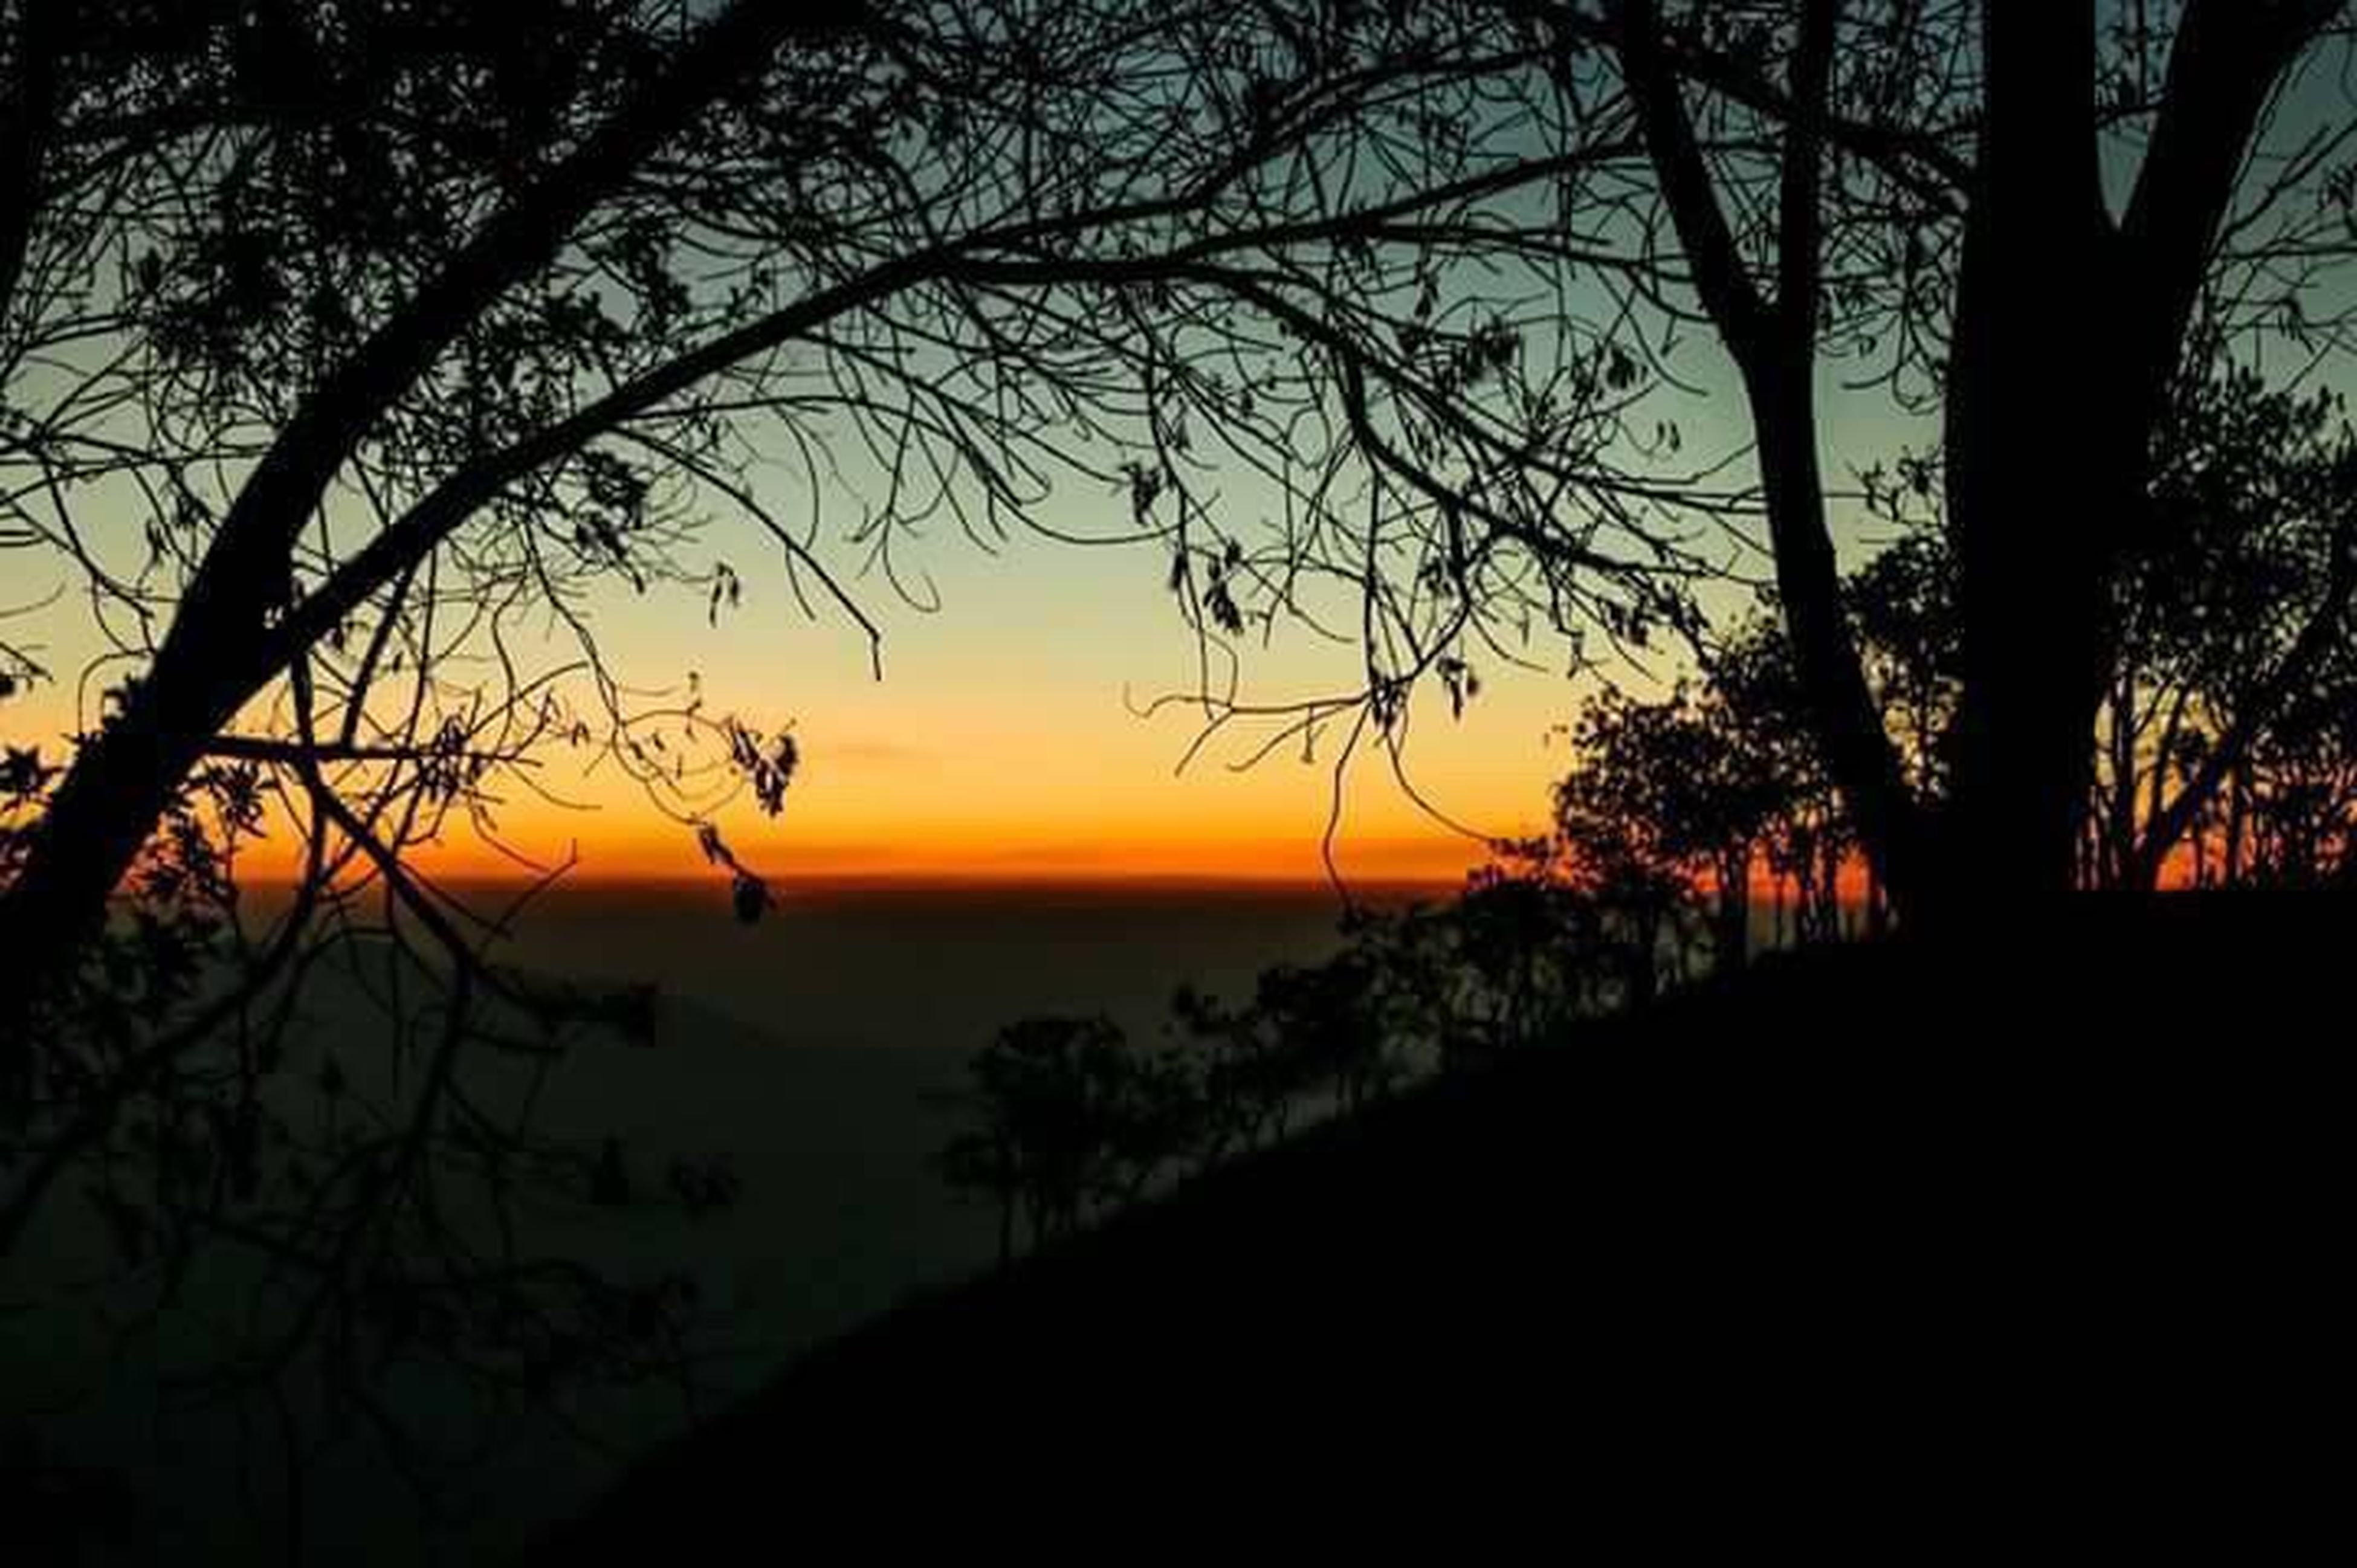 sunset, tree, nature, beauty in nature, scenics, sky, outdoors, tranquility, branch, tranquil scene, no people, sun, landscape, water, day